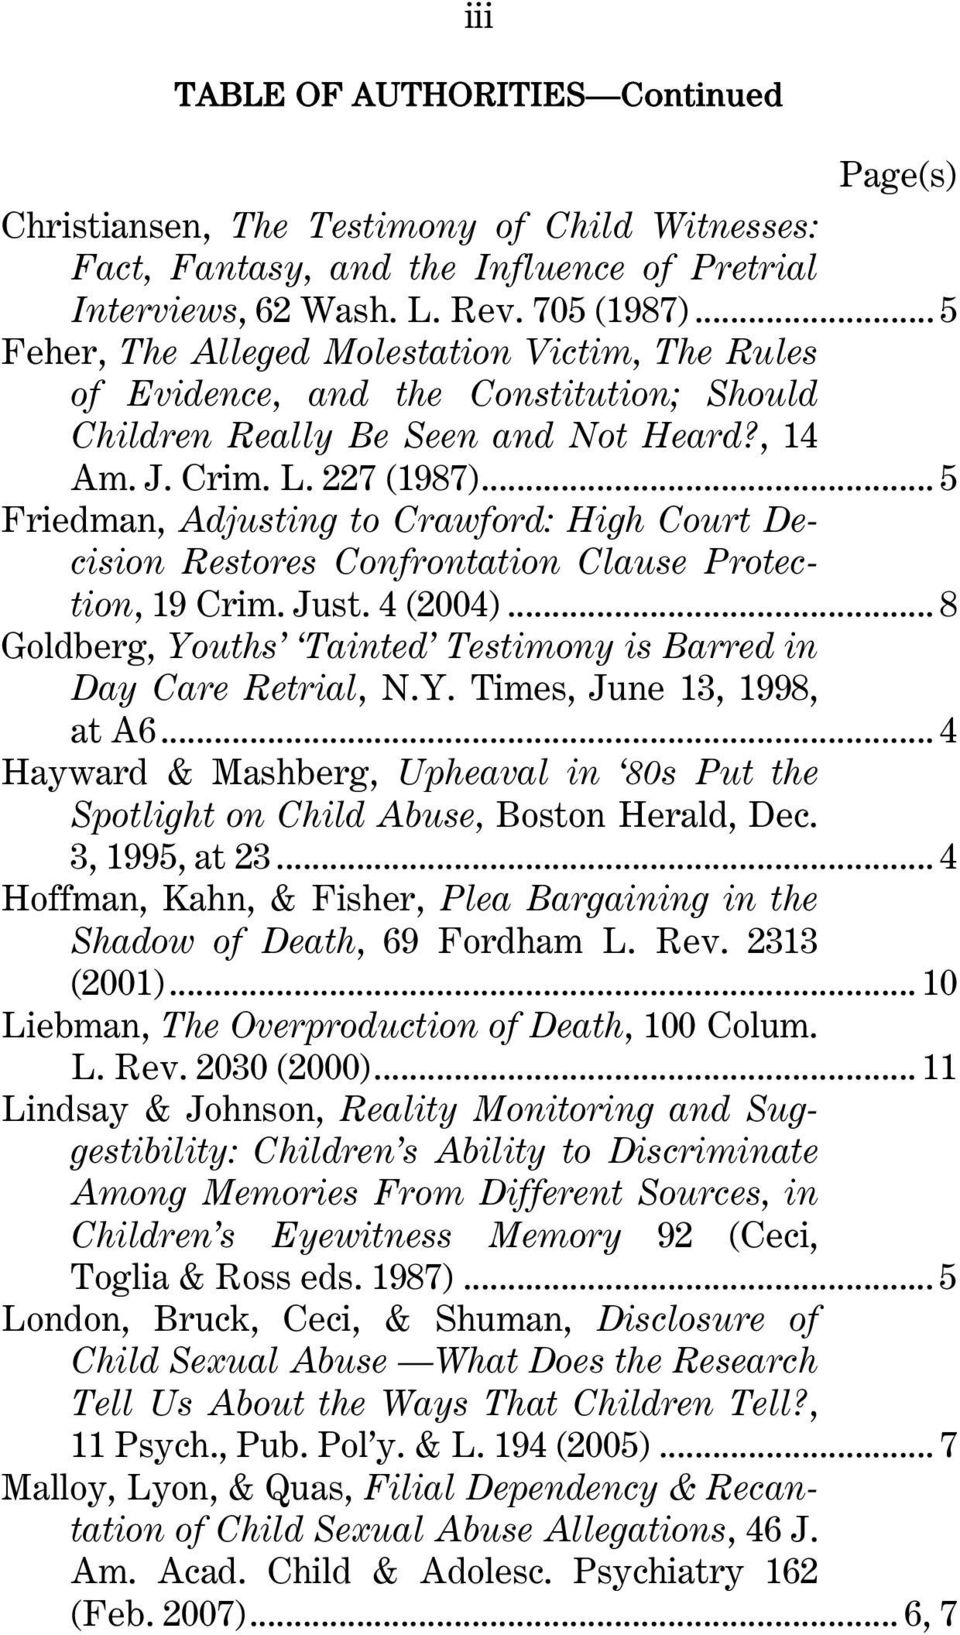 .. 5 Friedman, Adjusting to Crawford: High Court Decision Restores Confrontation Clause Protection, 19 Crim. Just. 4 (2004)... 8 Goldberg, Youths Tainted Testimony is Barred in Day Care Retrial, N.Y. Times, June 13, 1998, at A6.